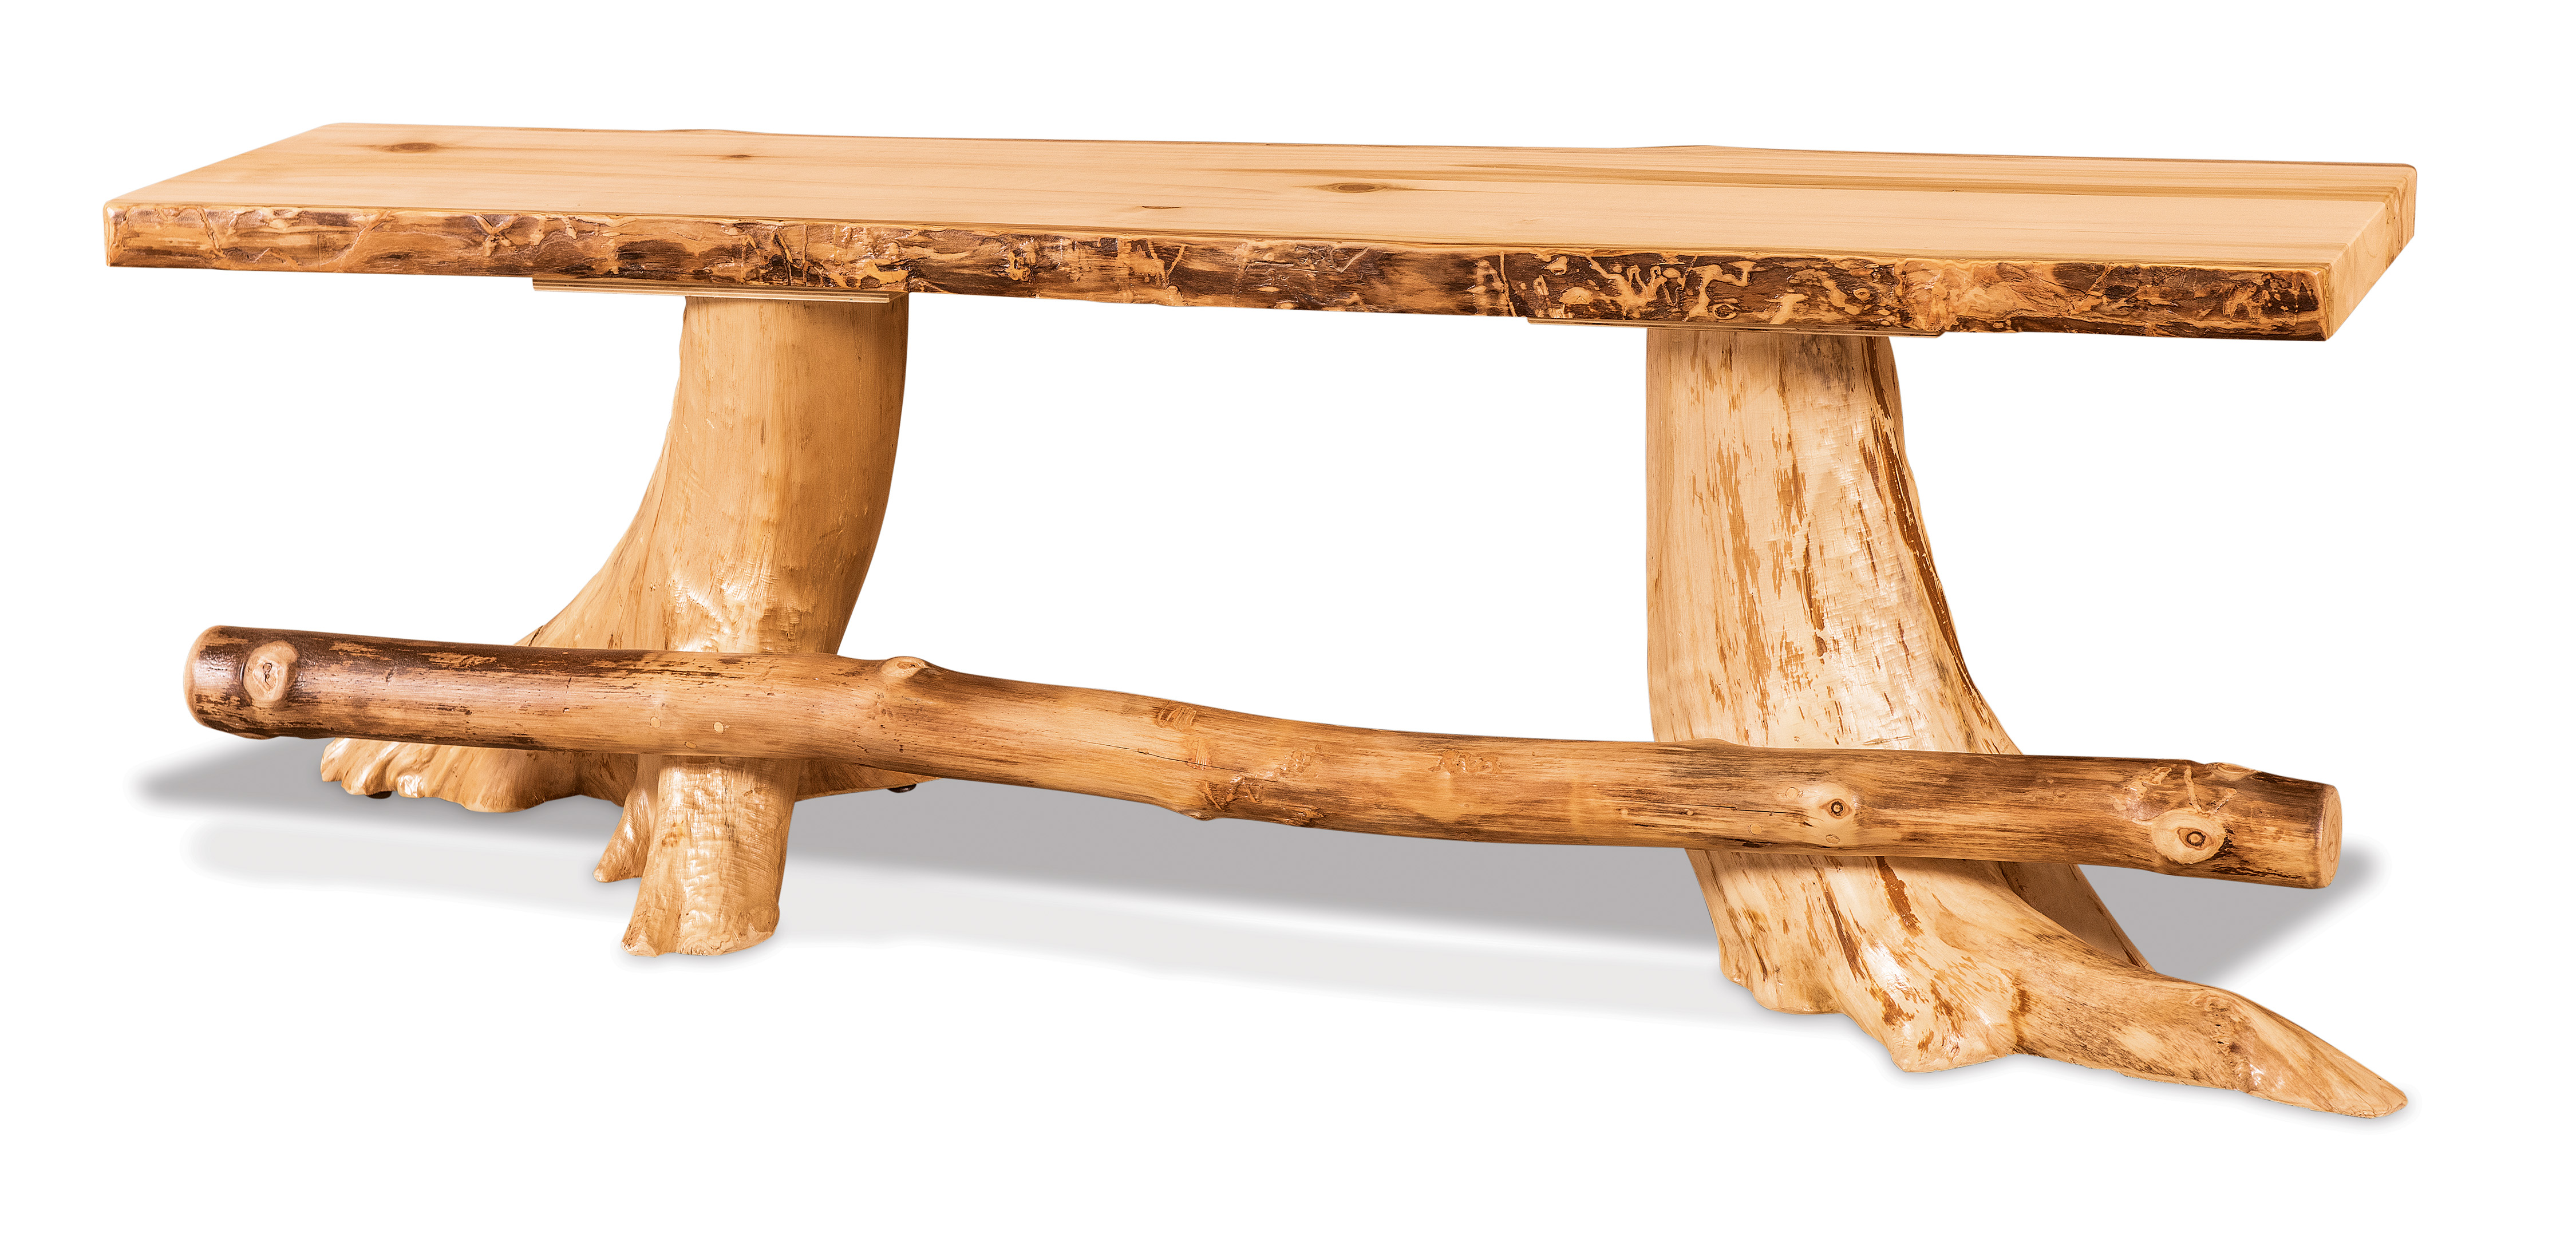 Flat Stump Bench w/Foot Rest Product